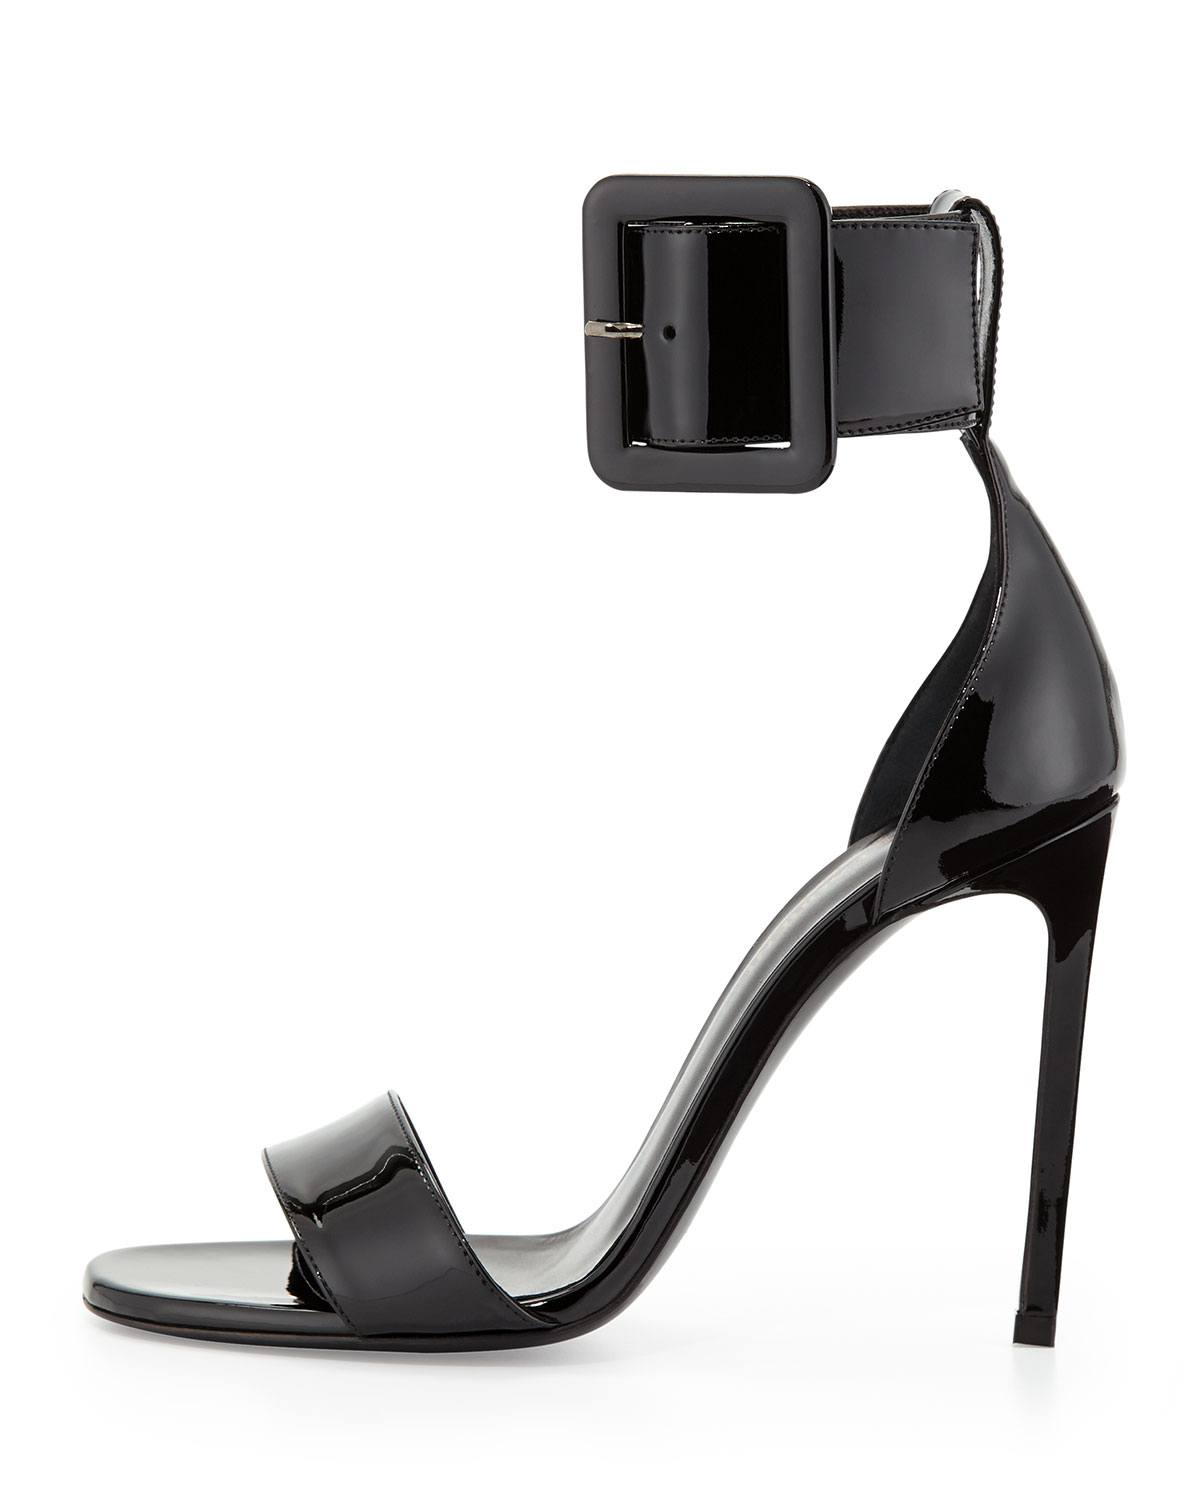 Patent Ankle-Buckle dOrsay Sandal